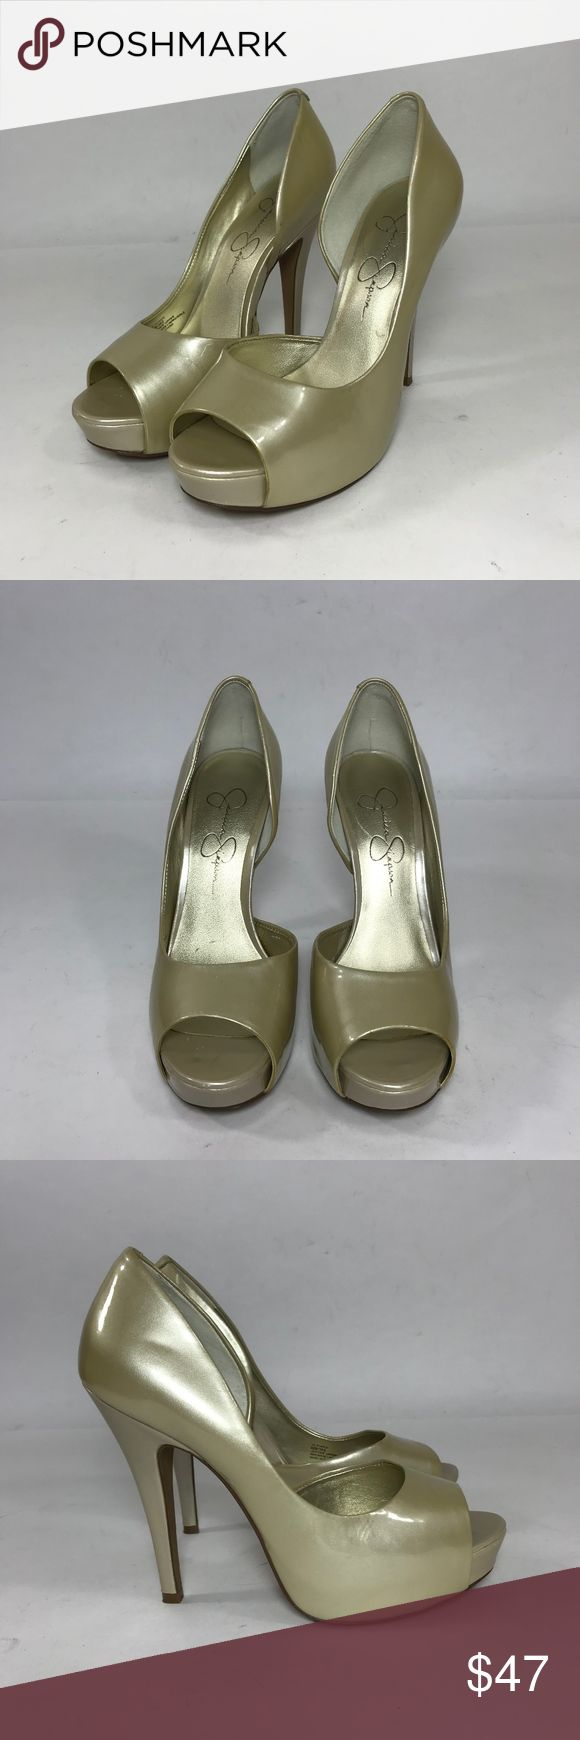 Jessica Simpson High Heel in Pale Gold WEBSITE - WWW.THECHICAGOCONSIGNMENT.COM  INSTAGRAM - @CHICAGOCONSIGNMENT  CONDITION - Worn once  BRAND - Jessica Simpson  SKU - 654-SHAS  RETAIL PRICE - $235   SIZE - 6.5  FIT - Regular/Medium  MATERIAL - Patent Leather  LENGTH - Heel height: 4.5  INSOLE MEASUREMENT - 9.5  COLOR - Pale gold  ADDITIONAL INFO - Please note scuff on back of heel  NOTE - NO TRANSACTIONS OFF POSH. WE BUNDLE DISCOUNT AND ACCEPT REASONABLE OFFERS…